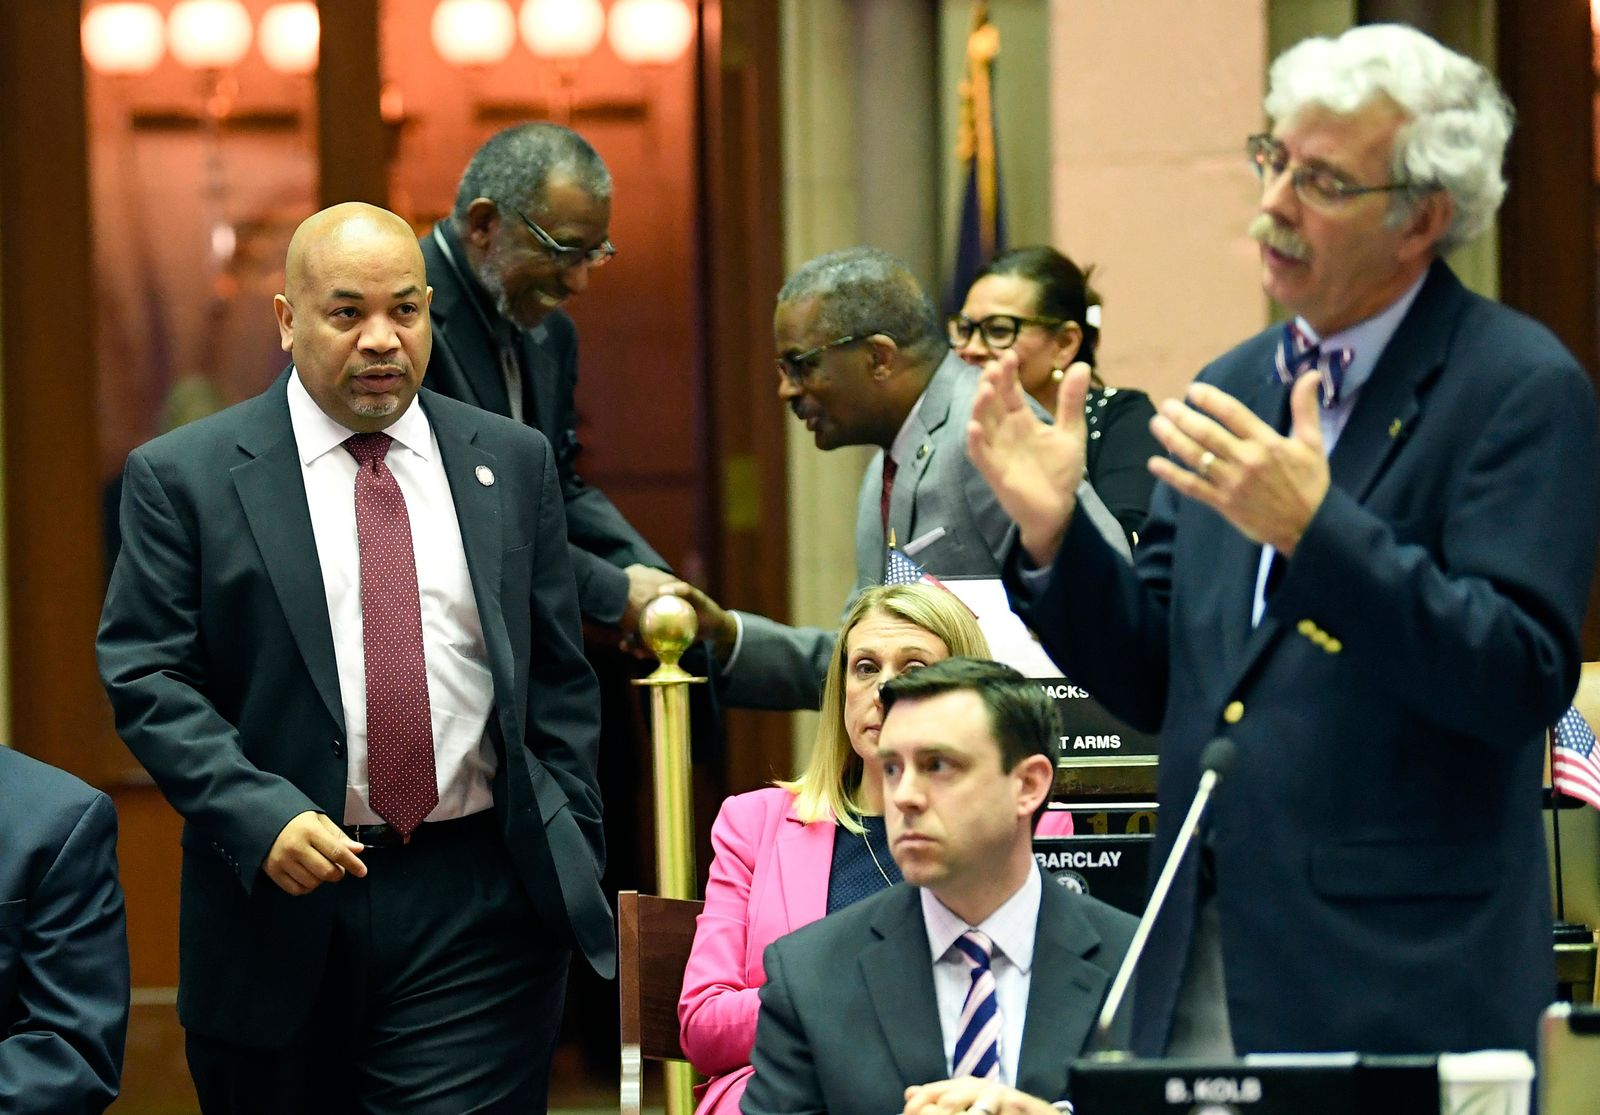 Assembly Speaker Carl Heastie, D-Bronx, left, walks on the Assembly floor as Assemblyman Andy Goodell, R-Jamestown ,right, speaks to members of the New York state Assembly against legislation that authorizes state tax officials to release, if requested, individual New York state tax returns to Congress during a vote in the Assembly Chamber at the state Capitol Wednesday, May 22, 2019, in Albany, N.Y. (AP Photo/Hans Pennink)